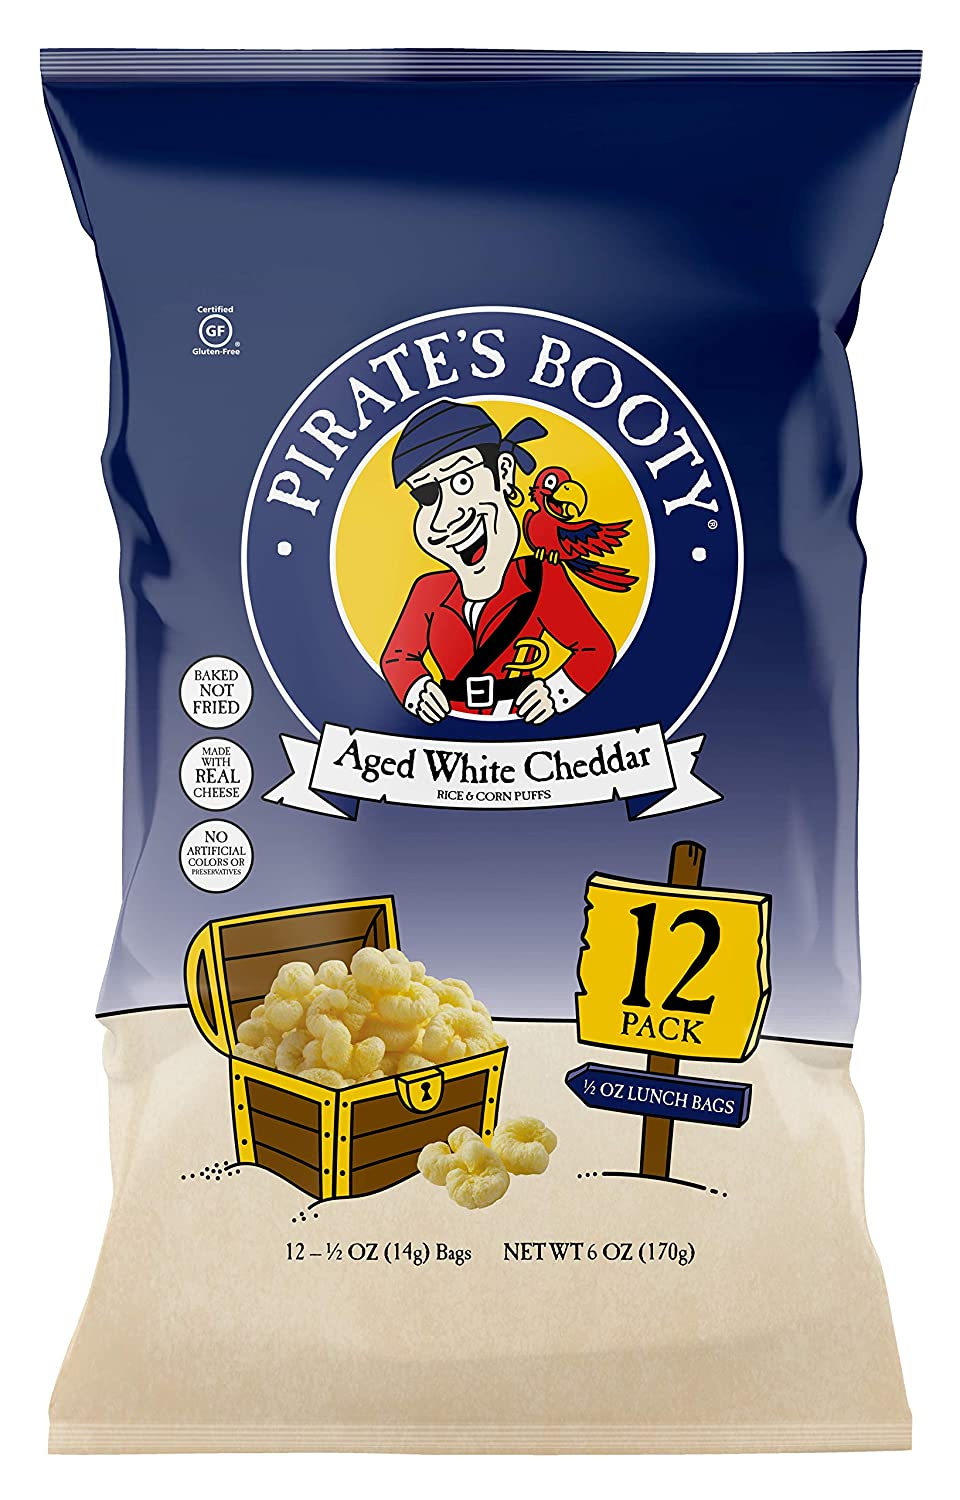 Pirate's Booty Snack Puffs, Aged White Cheddar, 6oz, 0.5 oz- 12 bags